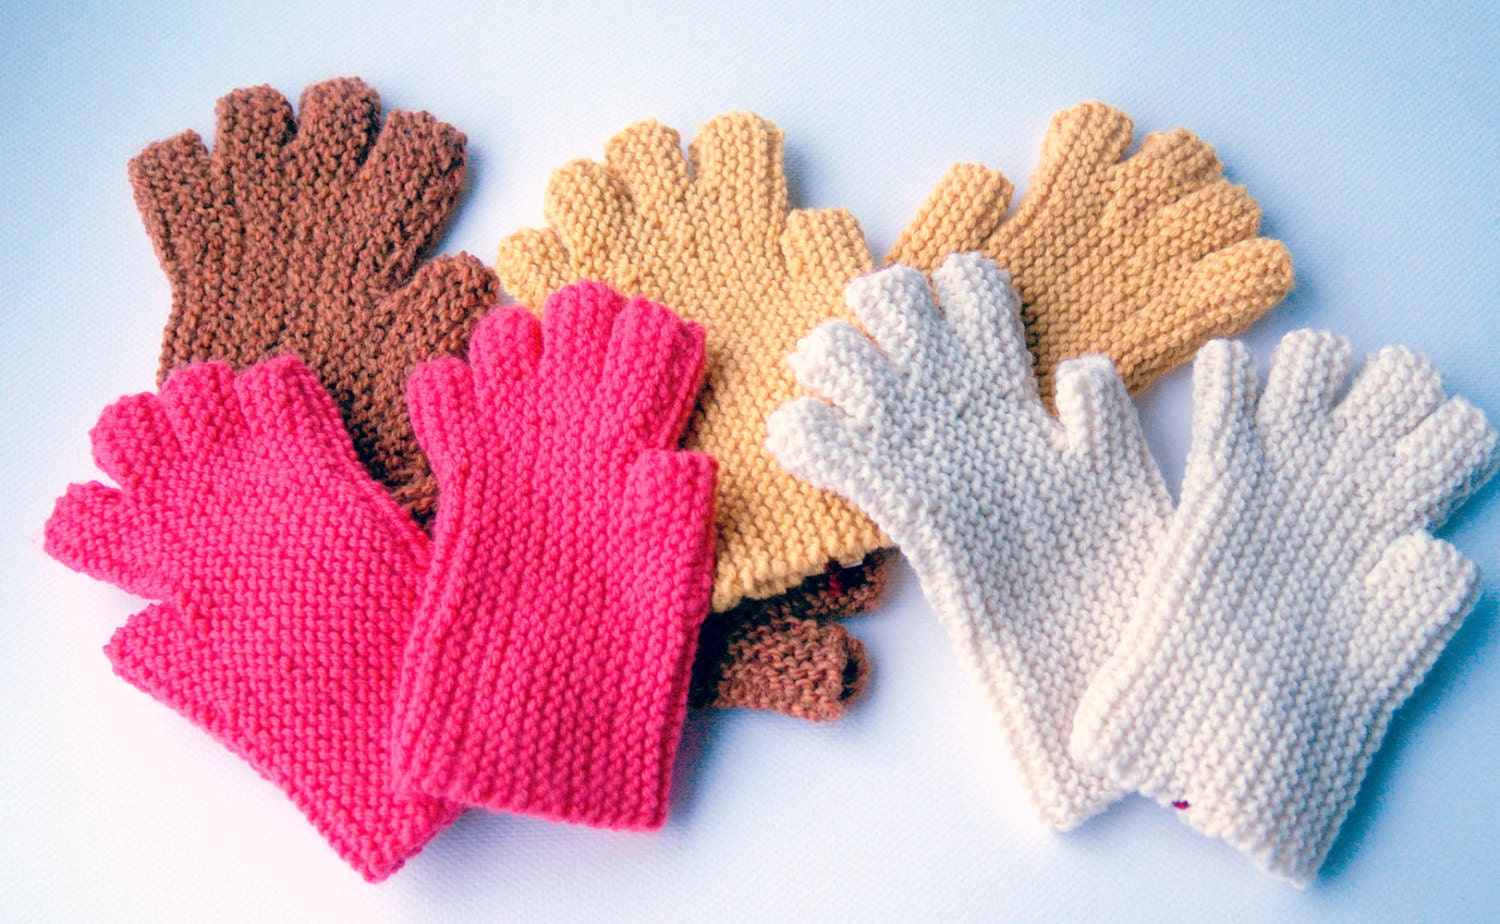 Fingerless Glove Pattern, Easy to knit, Worsted Weight, Downloadable ...